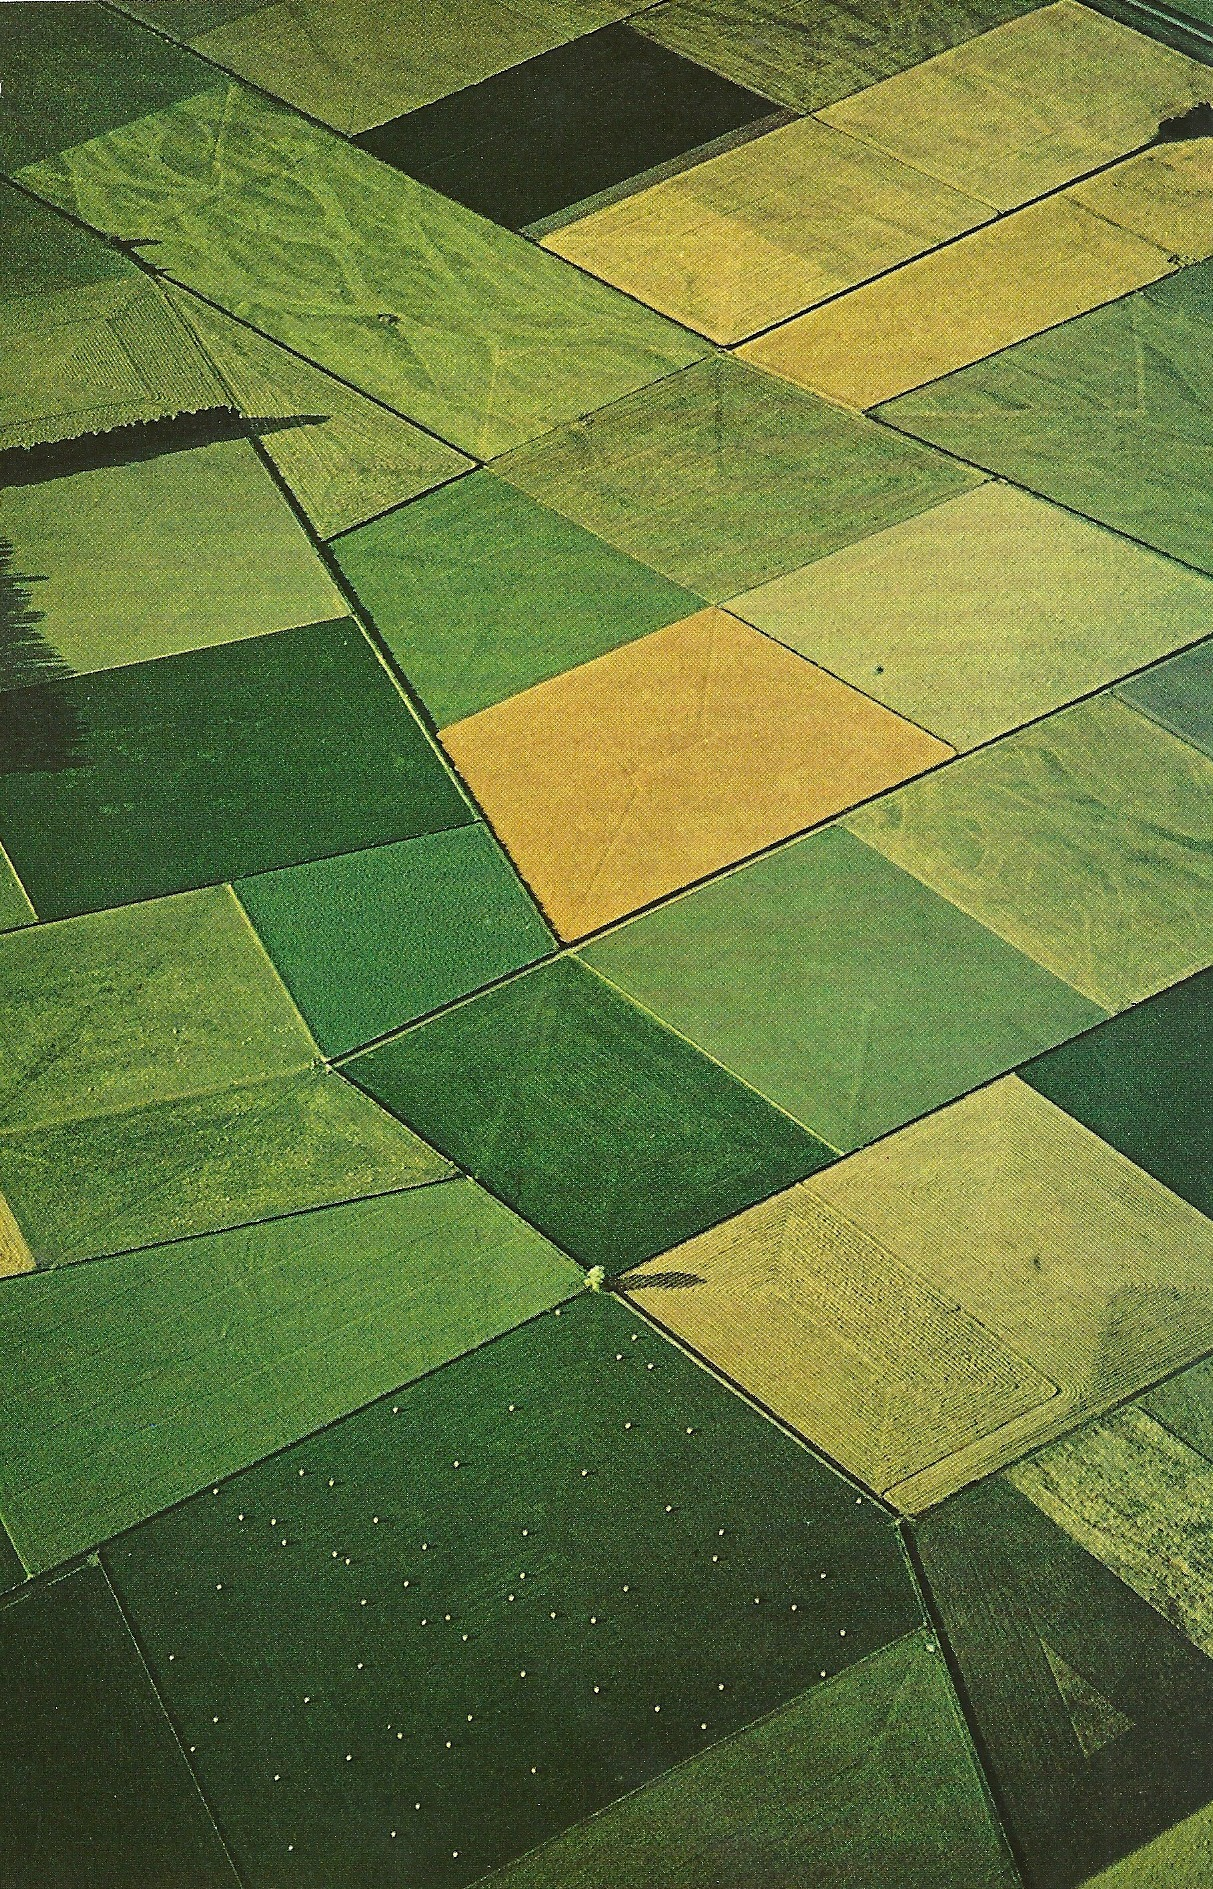 vintagenatgeographic:  Canterbury Plains, New Zealand National Geographic | January 1972